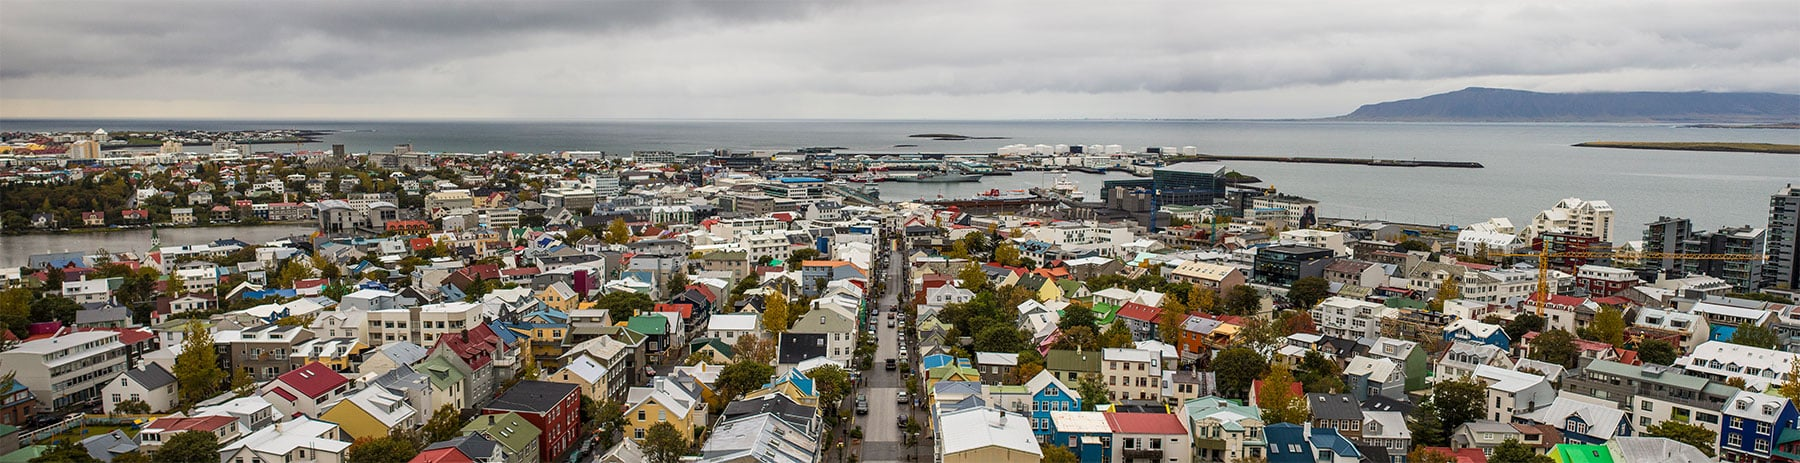 Head up the 73 meter (244 ft) tall Church of Hallgrímur, and get this quintessential view of Reykjavik.